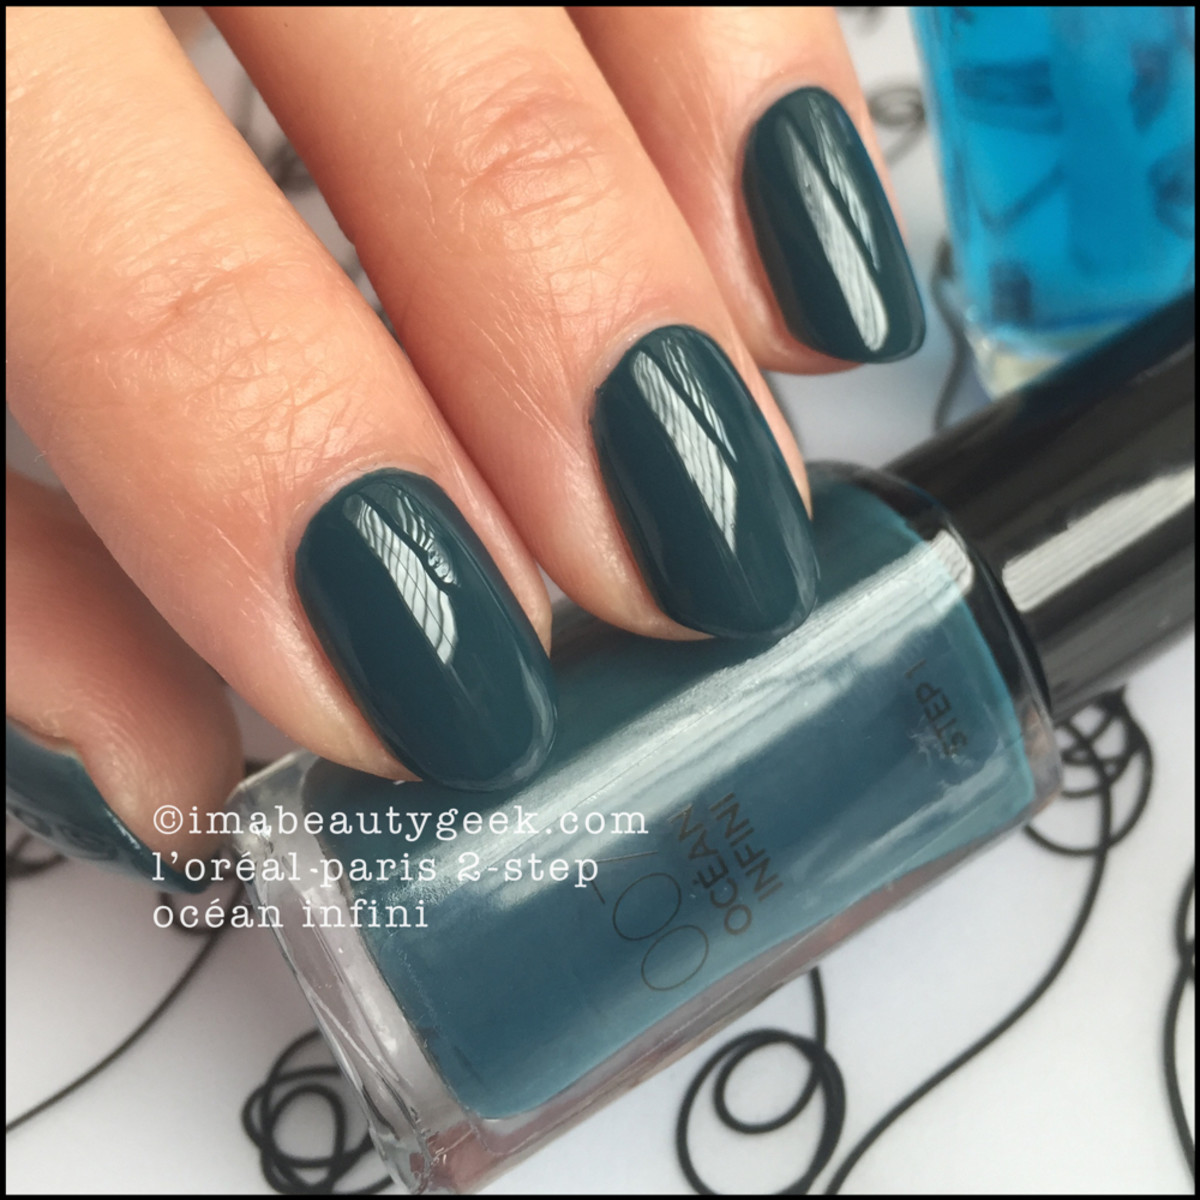 LOreal Paris 2Step Nail Polish Ocean Infini Beautygeeks Swatch